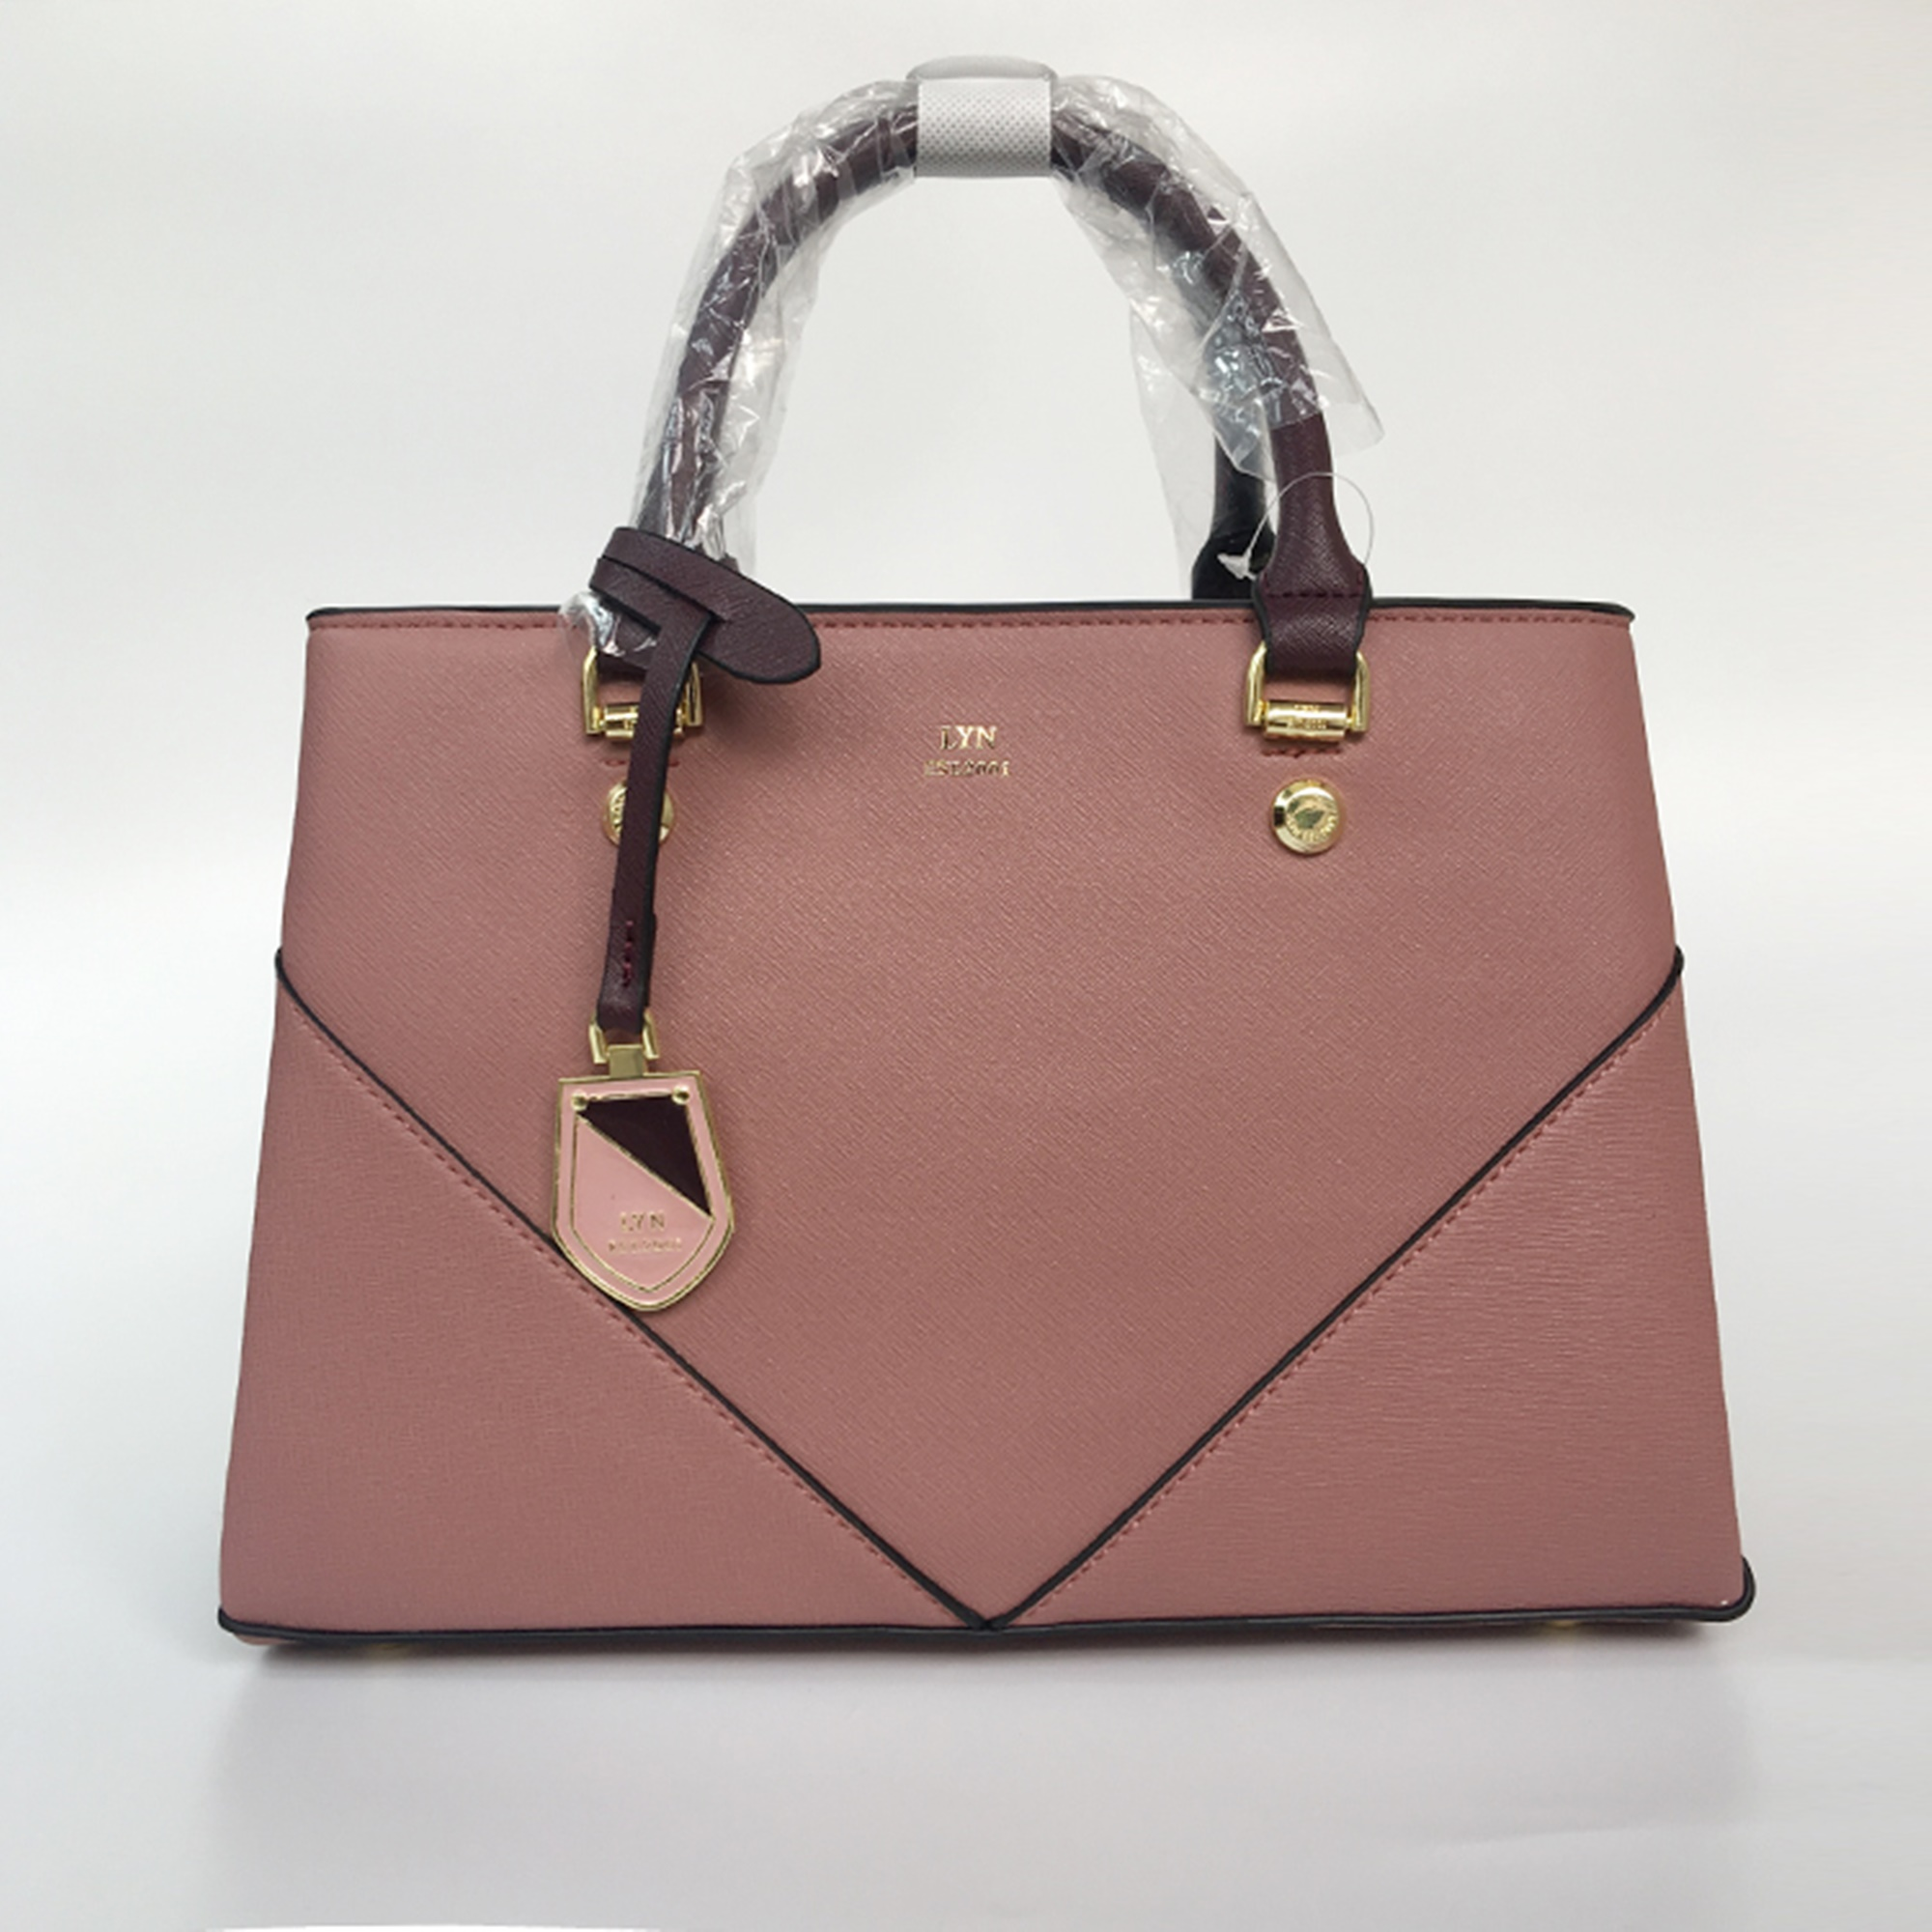 87be657178cd LYN AMOUR M BAG  สีชมพู - OutletBagStore   Inspired by LnwShop.com